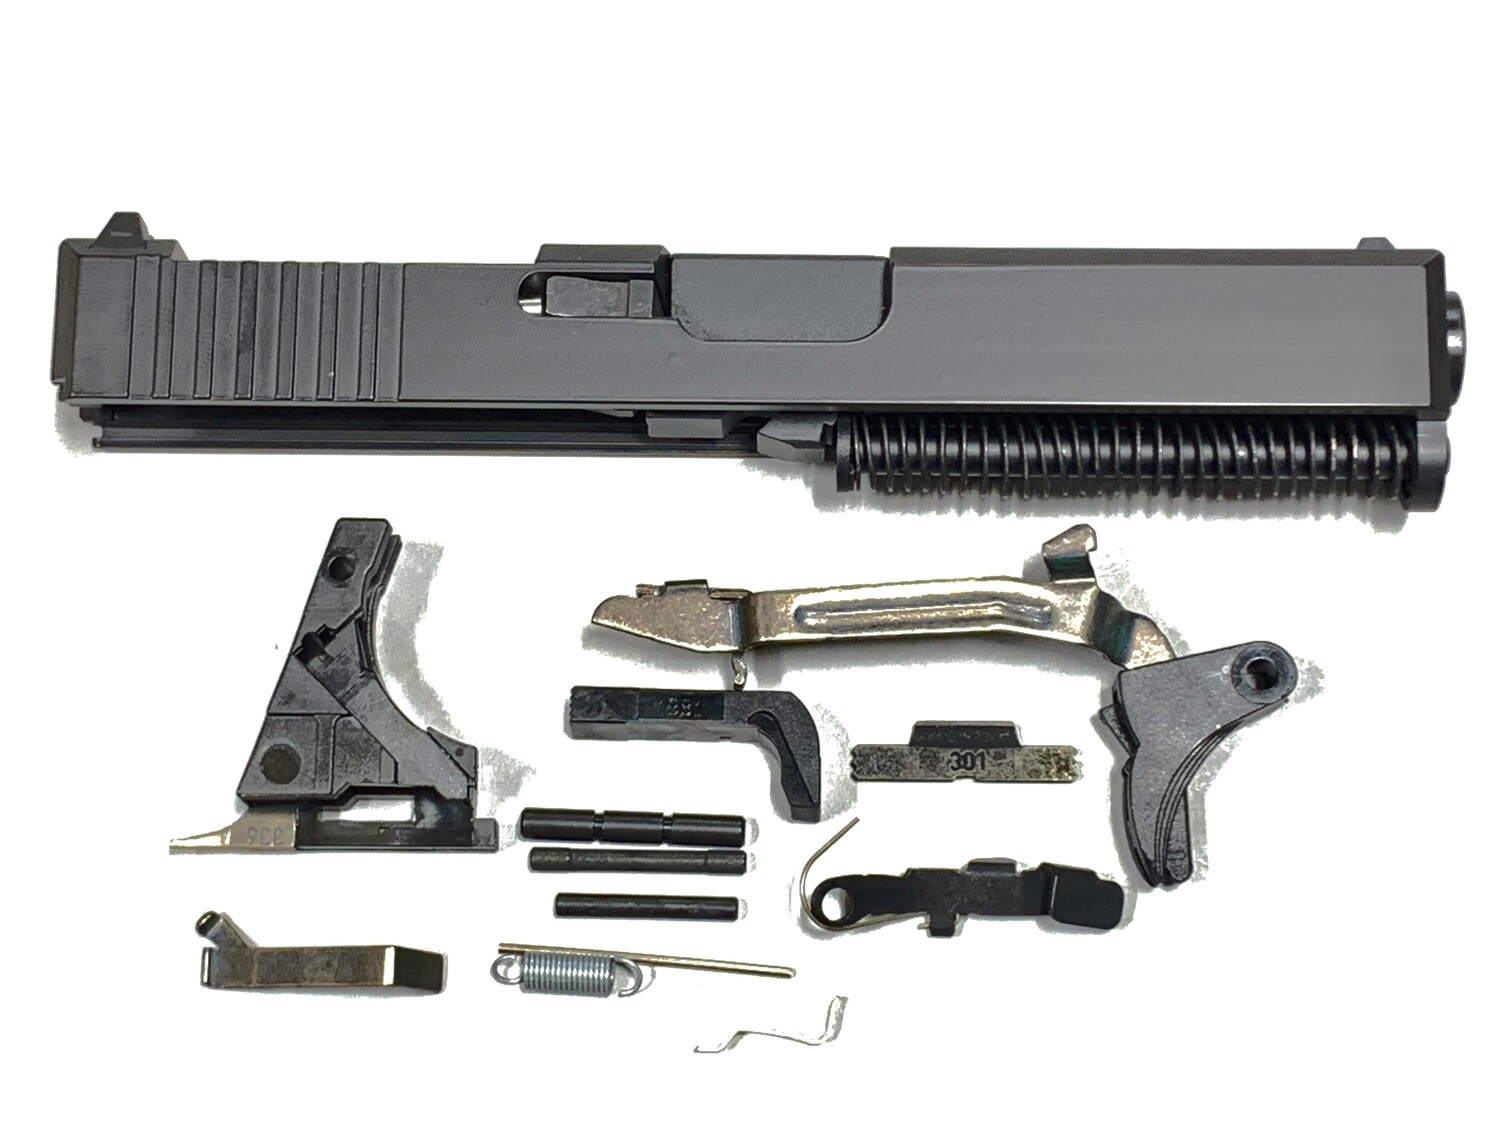 Glock 19 Complete Built Slide w/ Rear Serrations - RMR Trijicon Cut - Black - Comes With G19 Lower Parts Kit - Free Shipping